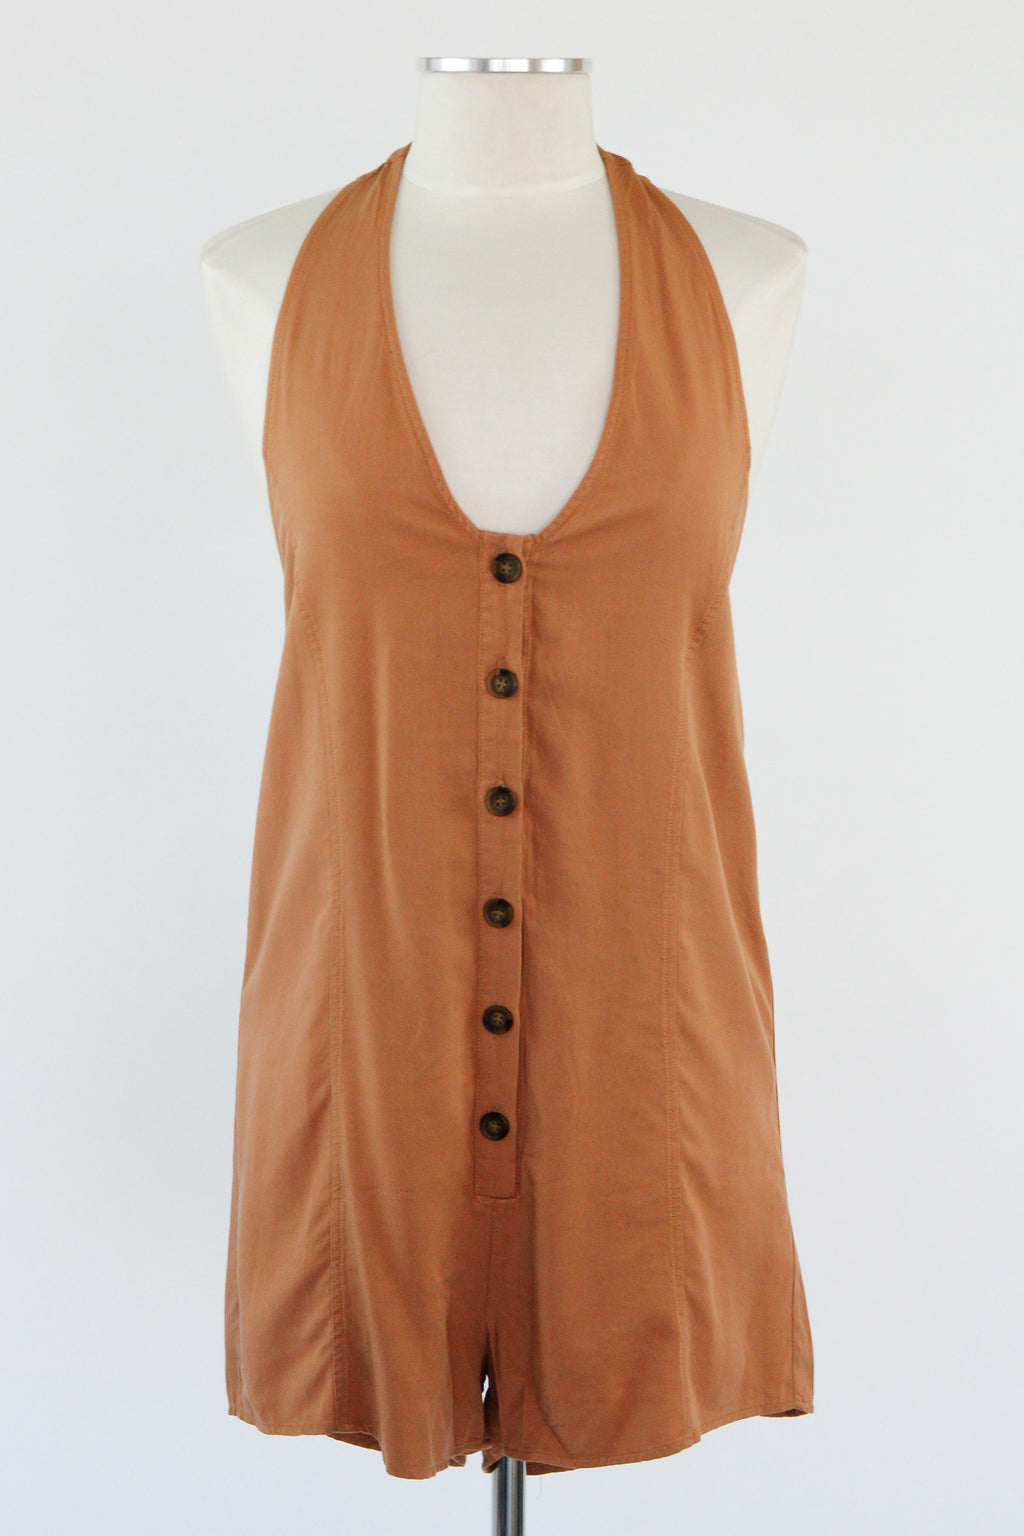 Iced Coffee In Hand Romper -Mocha